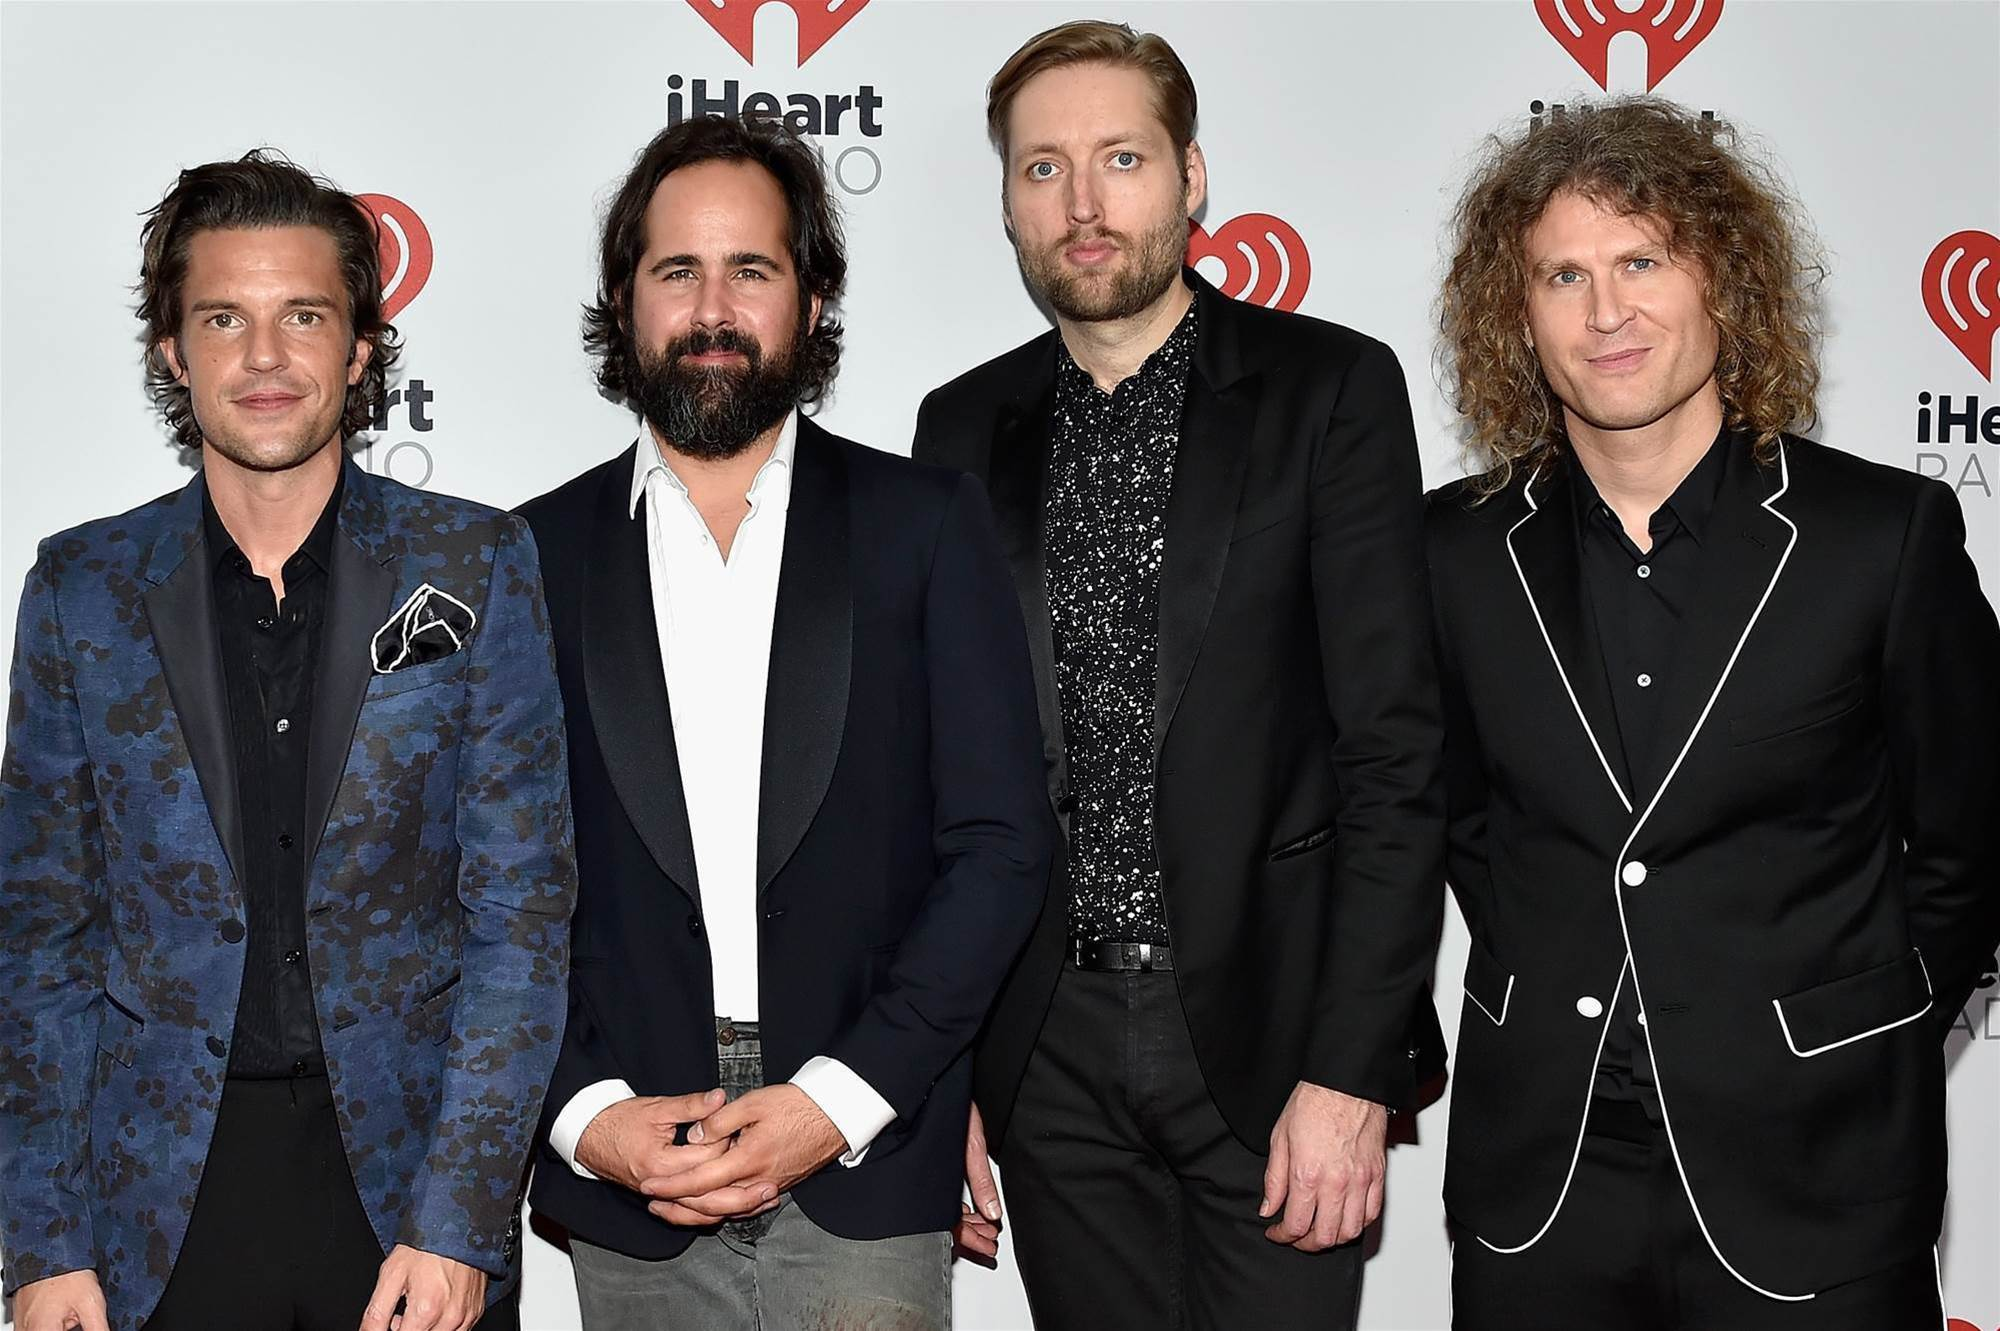 The Killers to rock AFL Grand Final